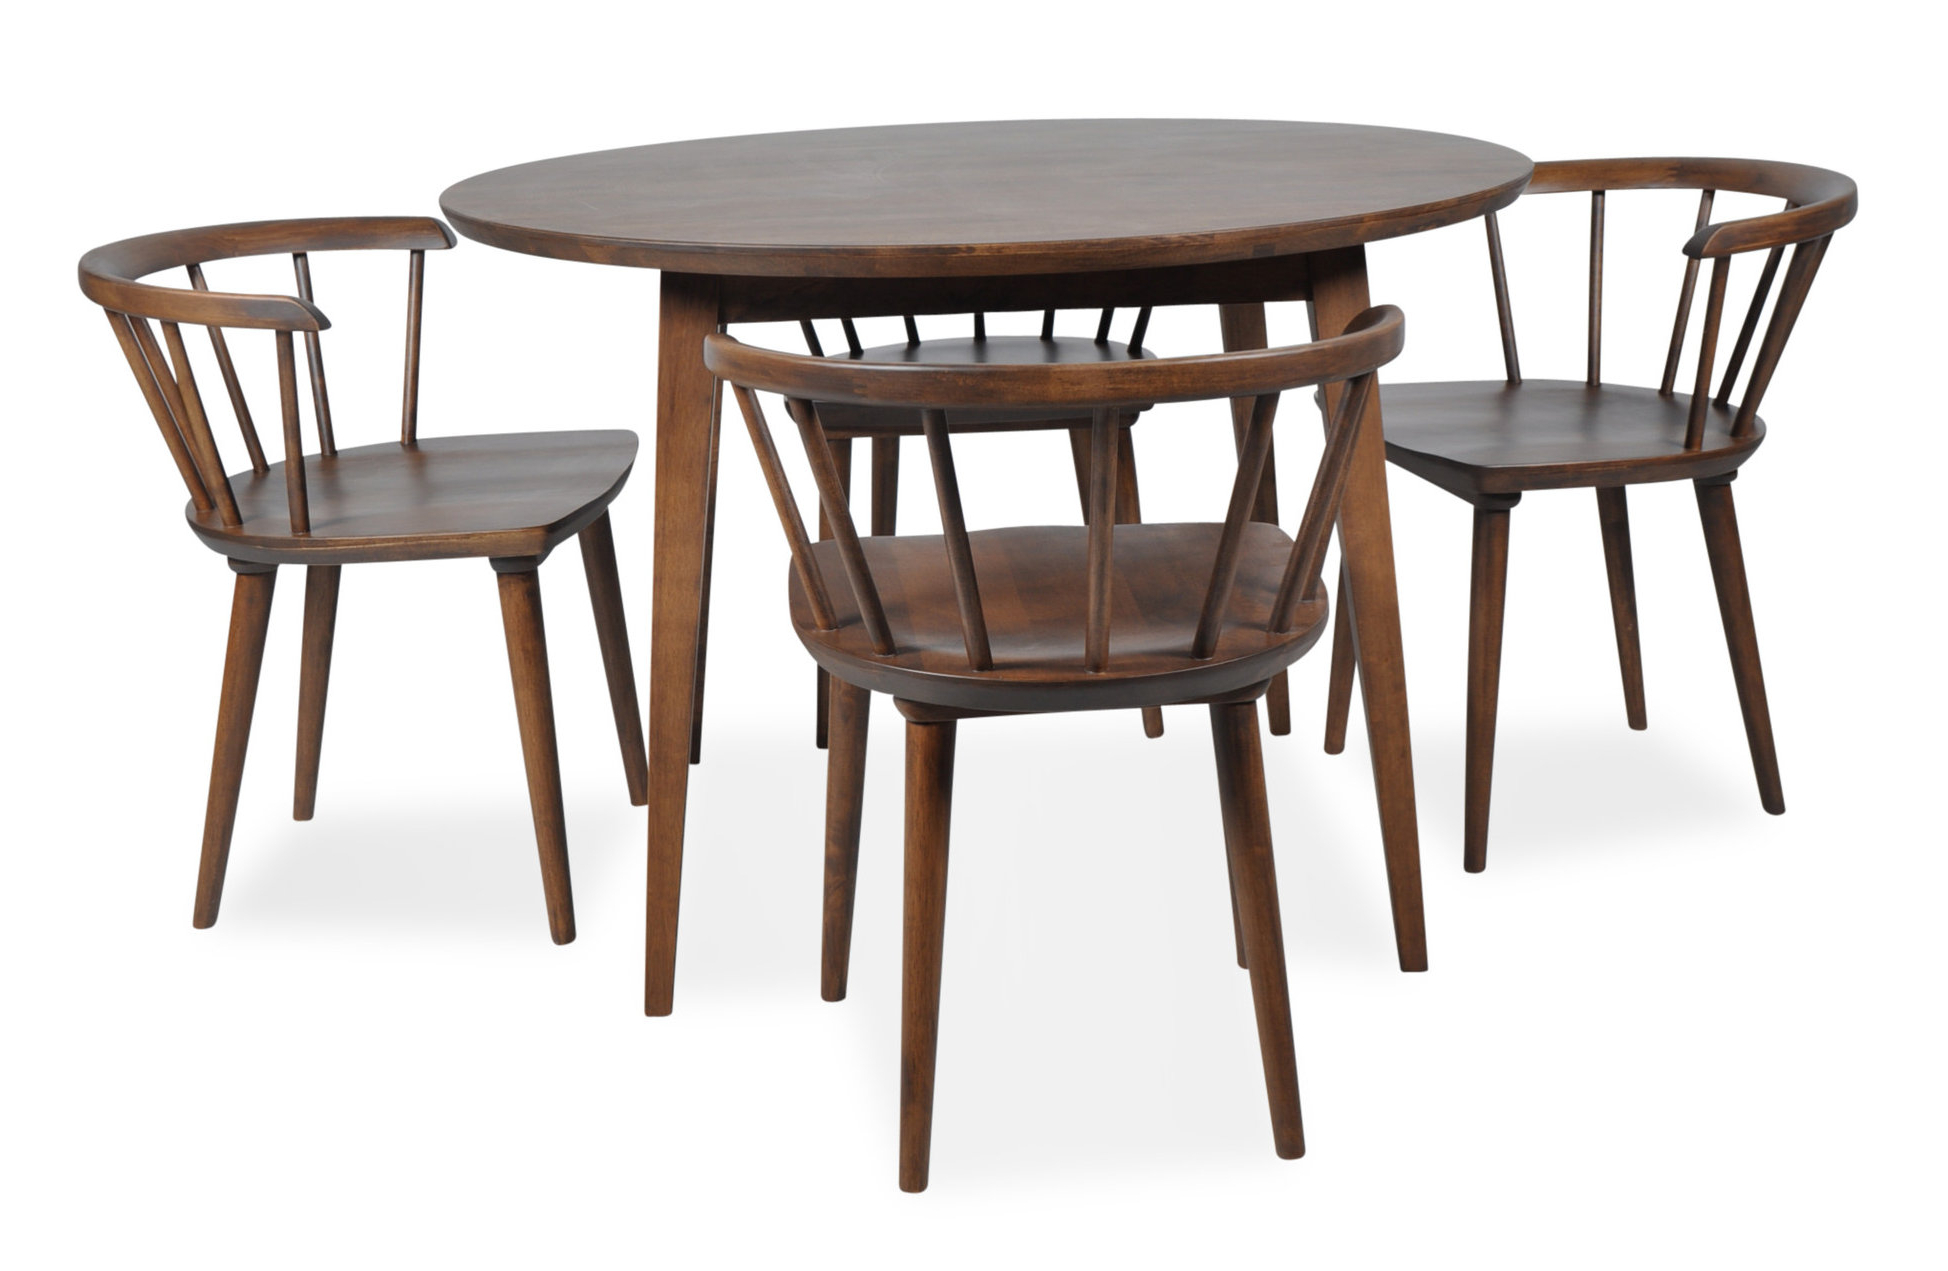 Best And Newest 5 Piece Breakfast Nook Dining Sets Regarding Burgan 5 Piece Solid Wood Breakfast Nook Dining Set & Reviews (View 16 of 25)